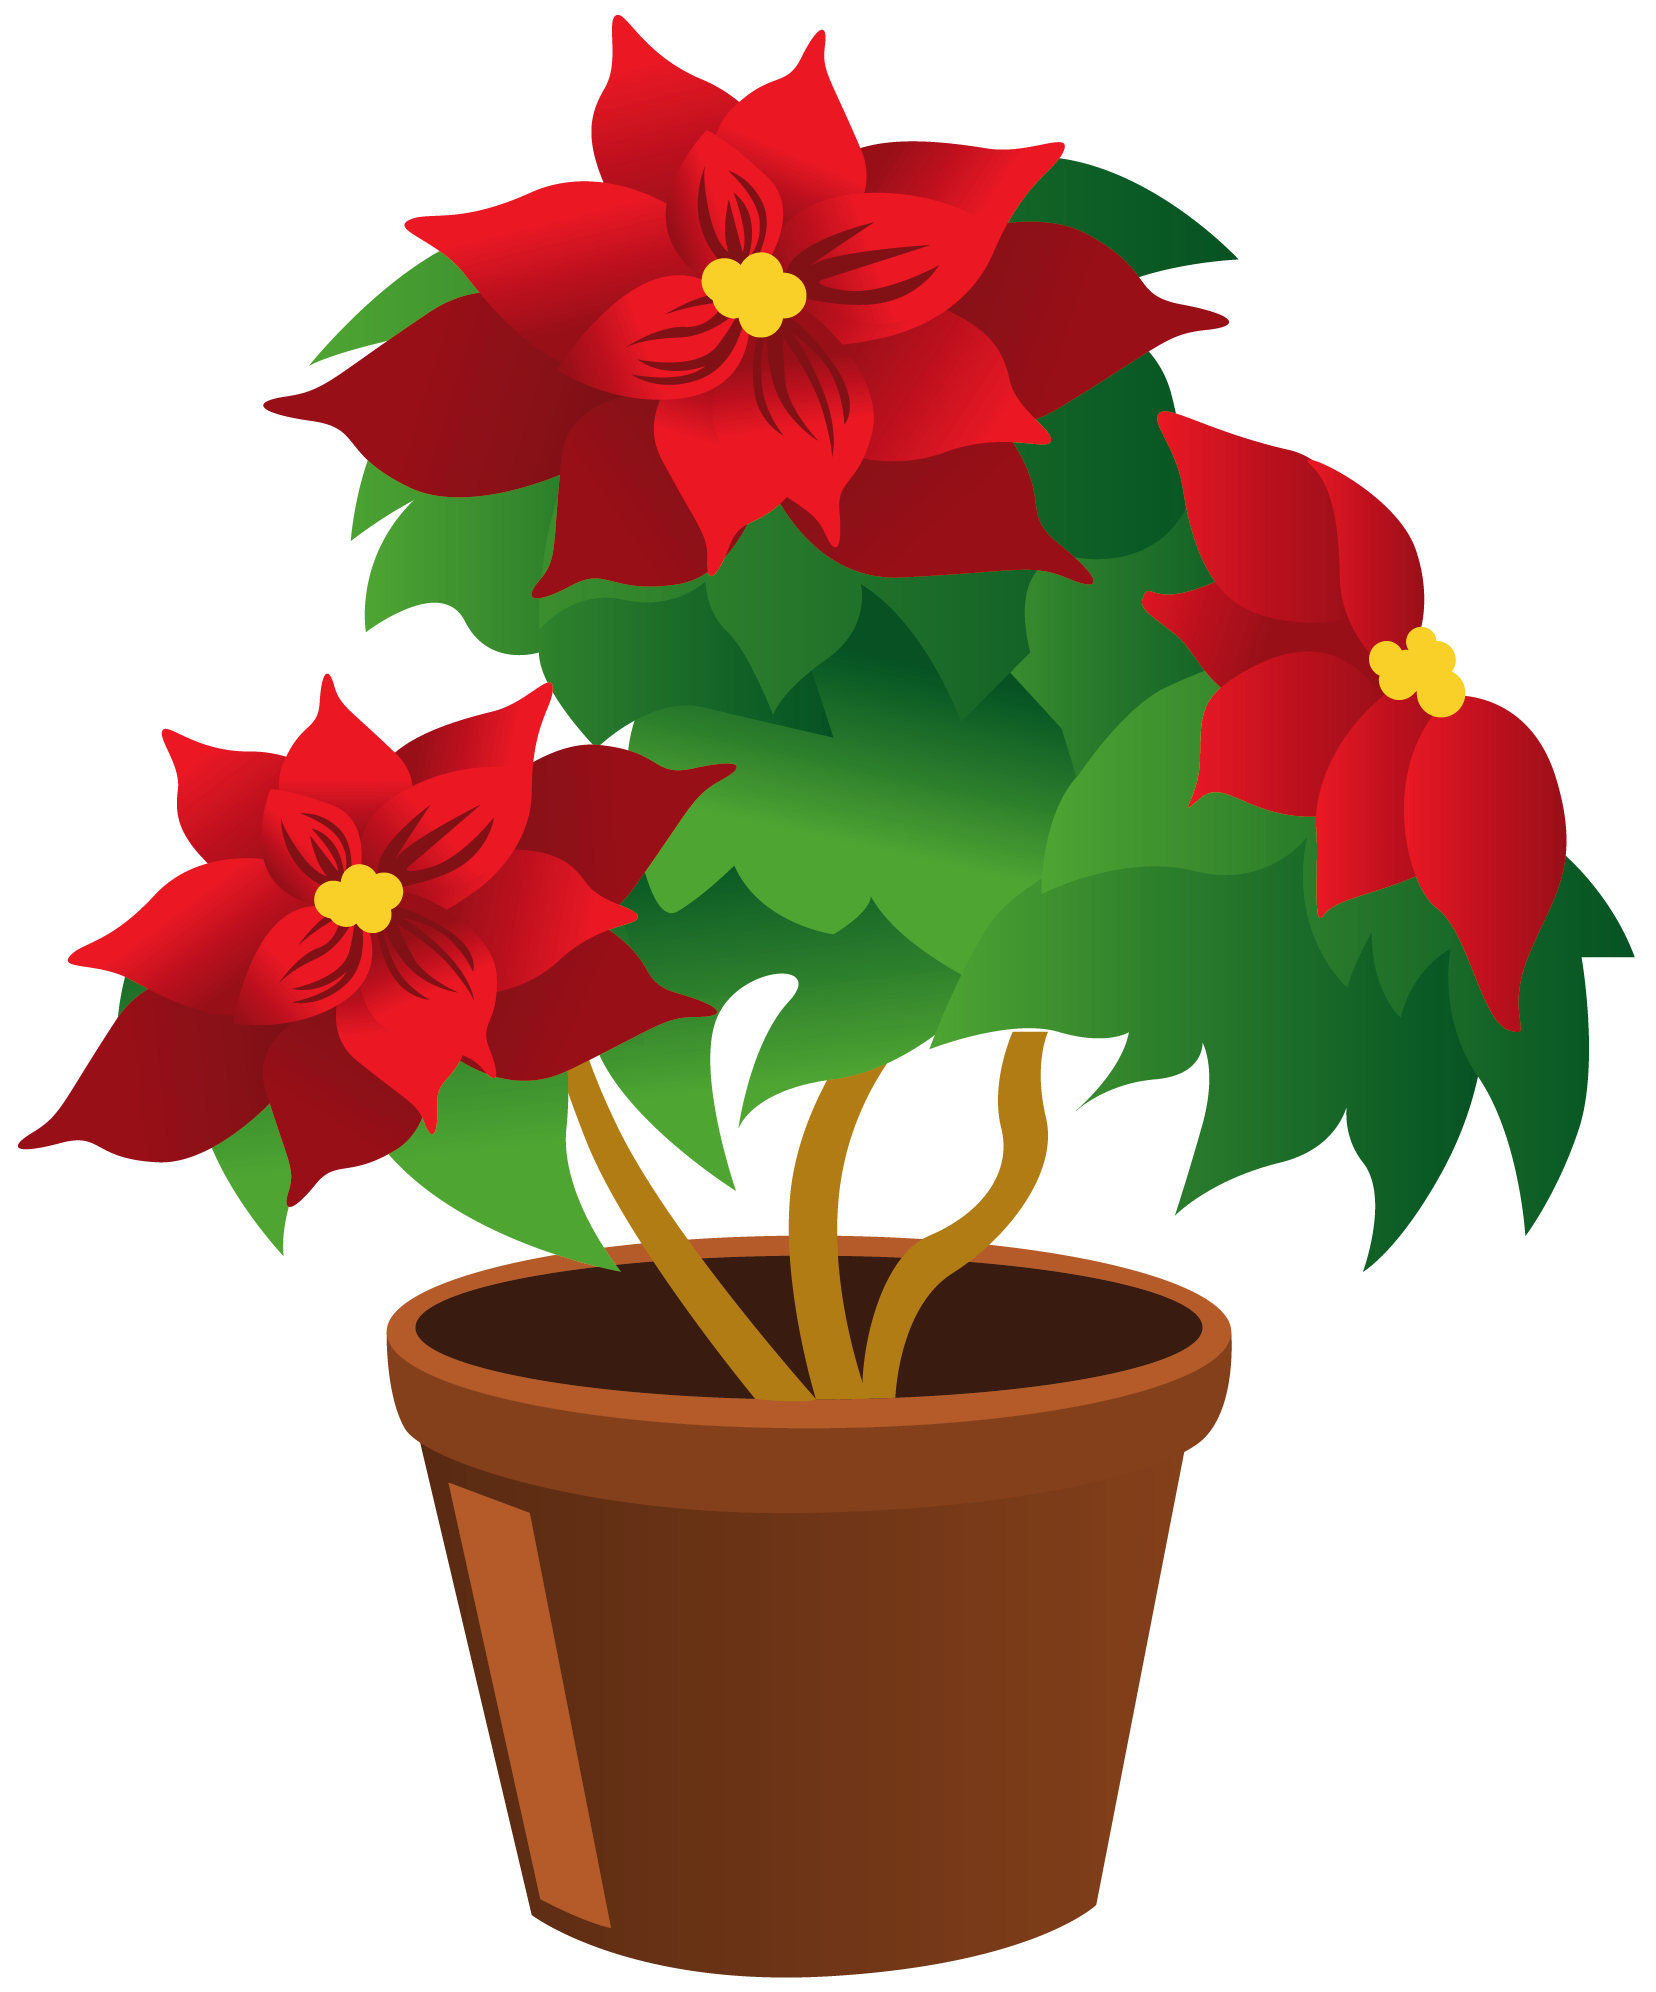 Plants clipart potted plant. Poinsettia pot png my